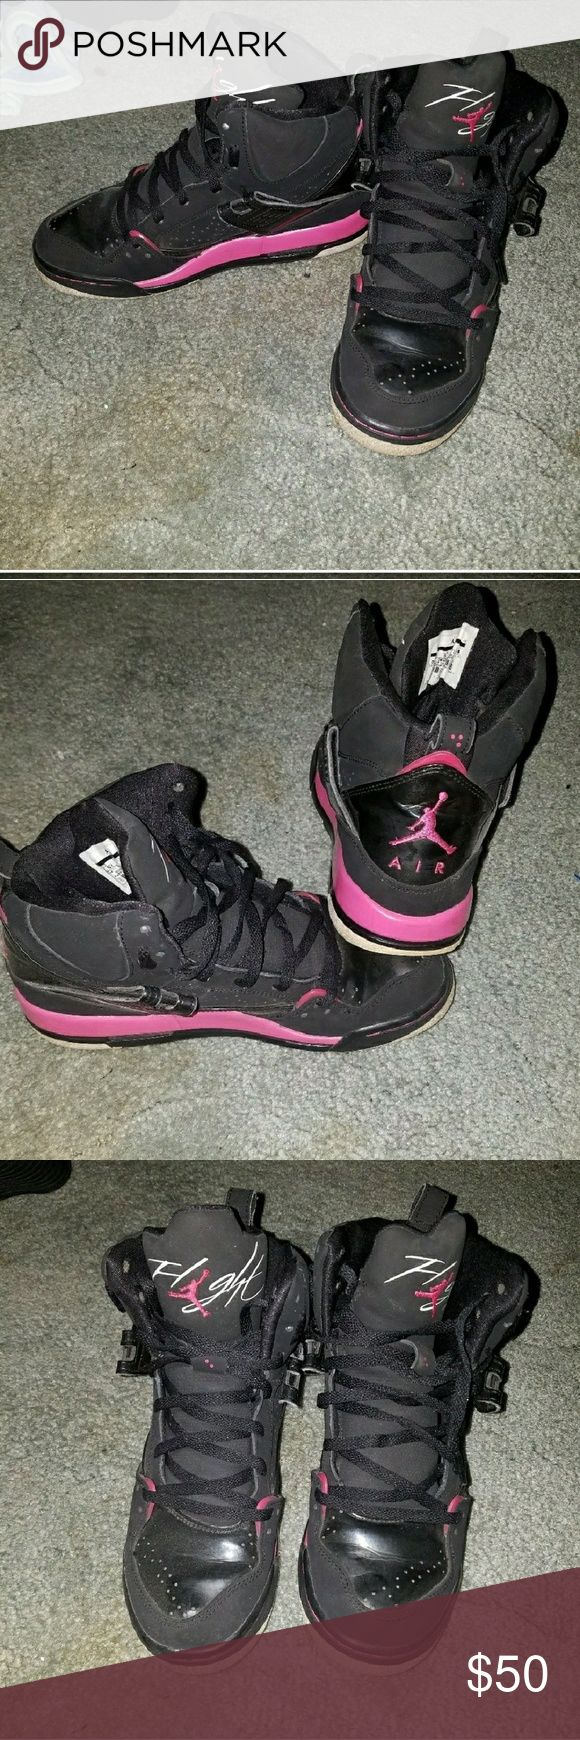 Jordan Air Flights Pink and black air flight jordans.  Worn a few times, no rips, tears, or stains. Laces in great condition. They list a 5.5Y size, but i wear 7.5 and they fit fine. They do not have the strap. Plenty of life left in them. Jordan Shoes Sneakers